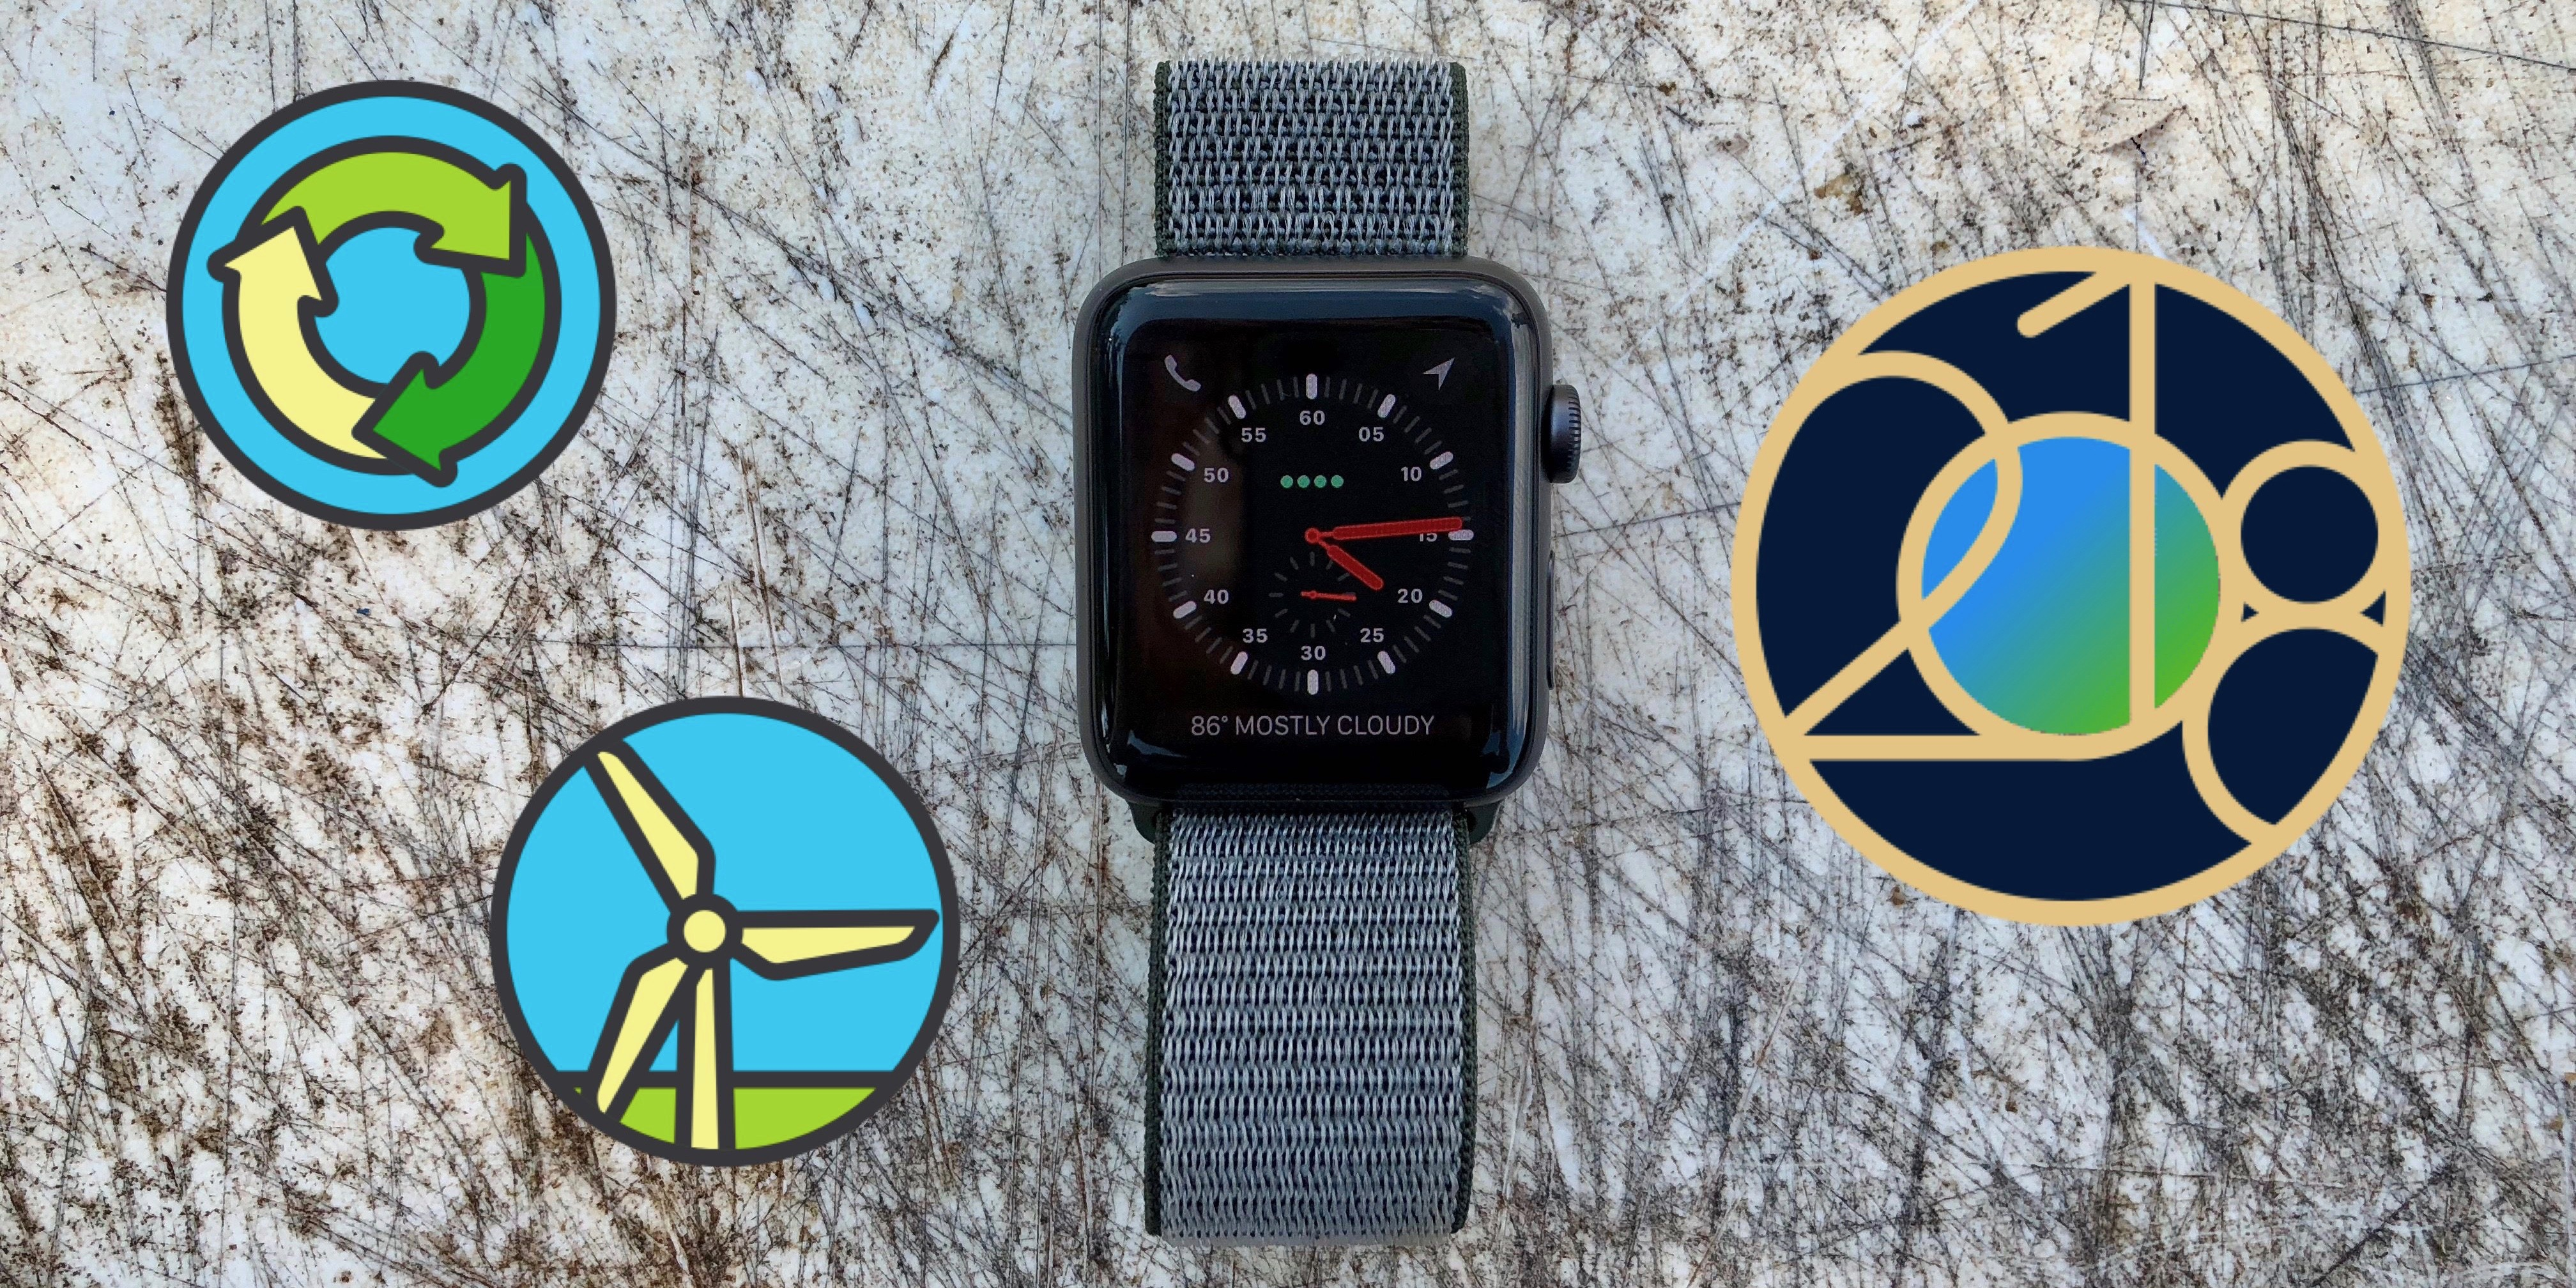 Next Apple Watch Activity Challenge set for Earth Day, 30 minute workout will unlock eco-friendly animated sticker pack